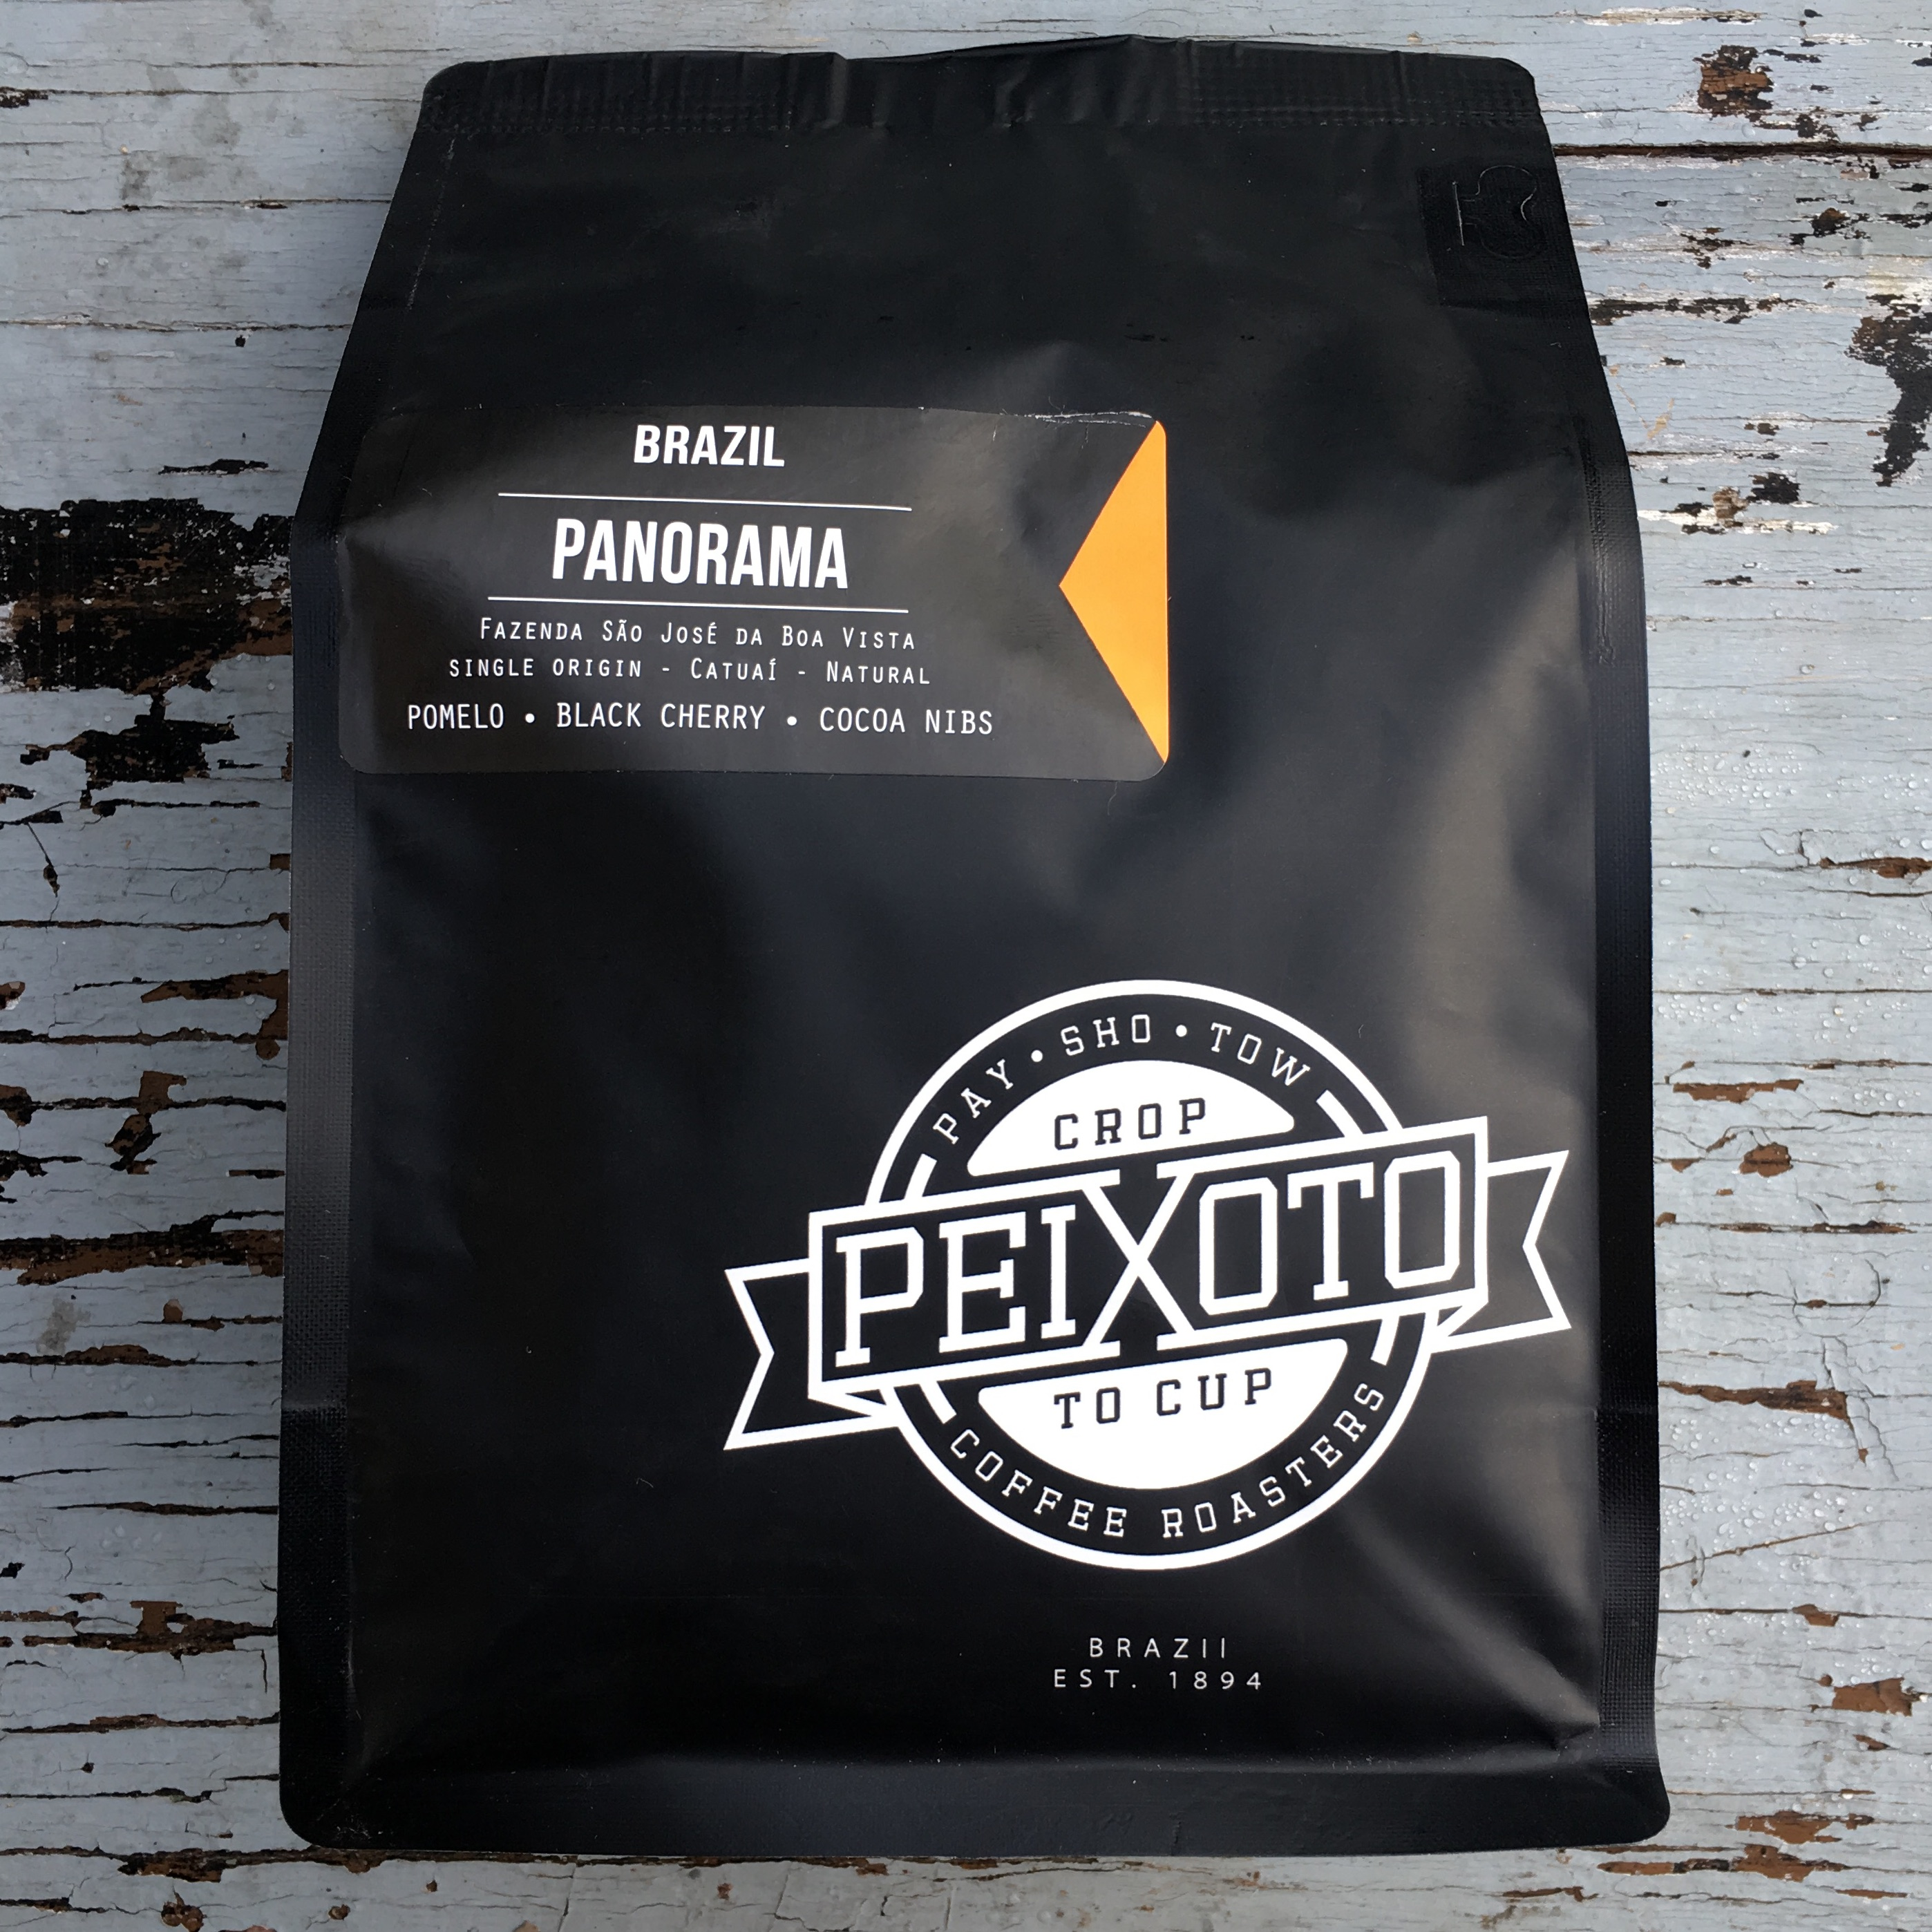 Peixoto Coffee Roasters Panorama